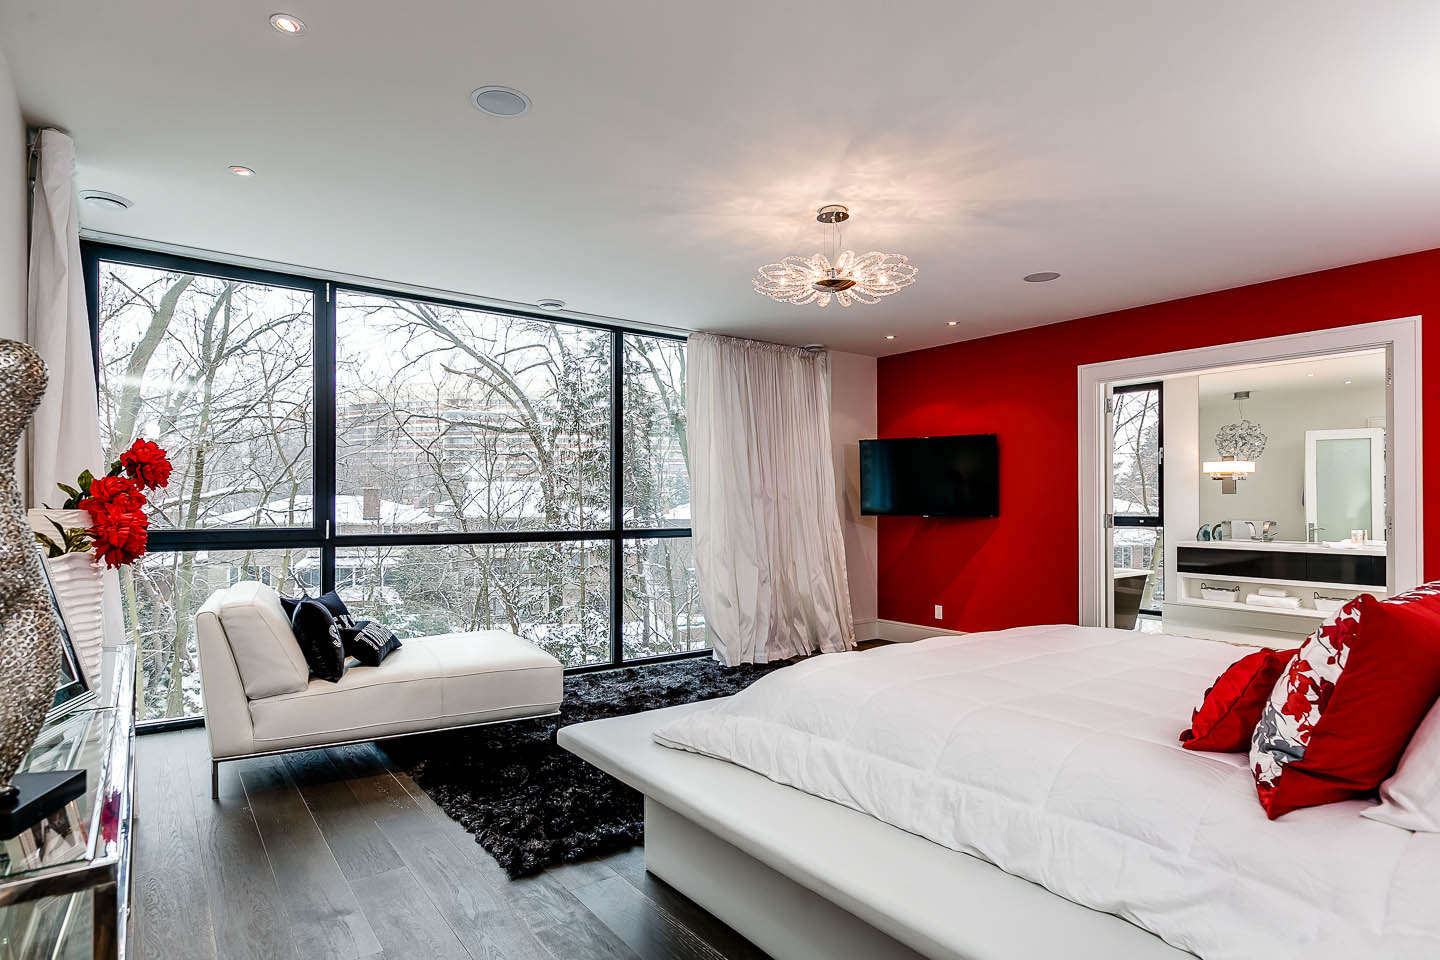 Bedroom, Contemporary House in Toronto, Canada